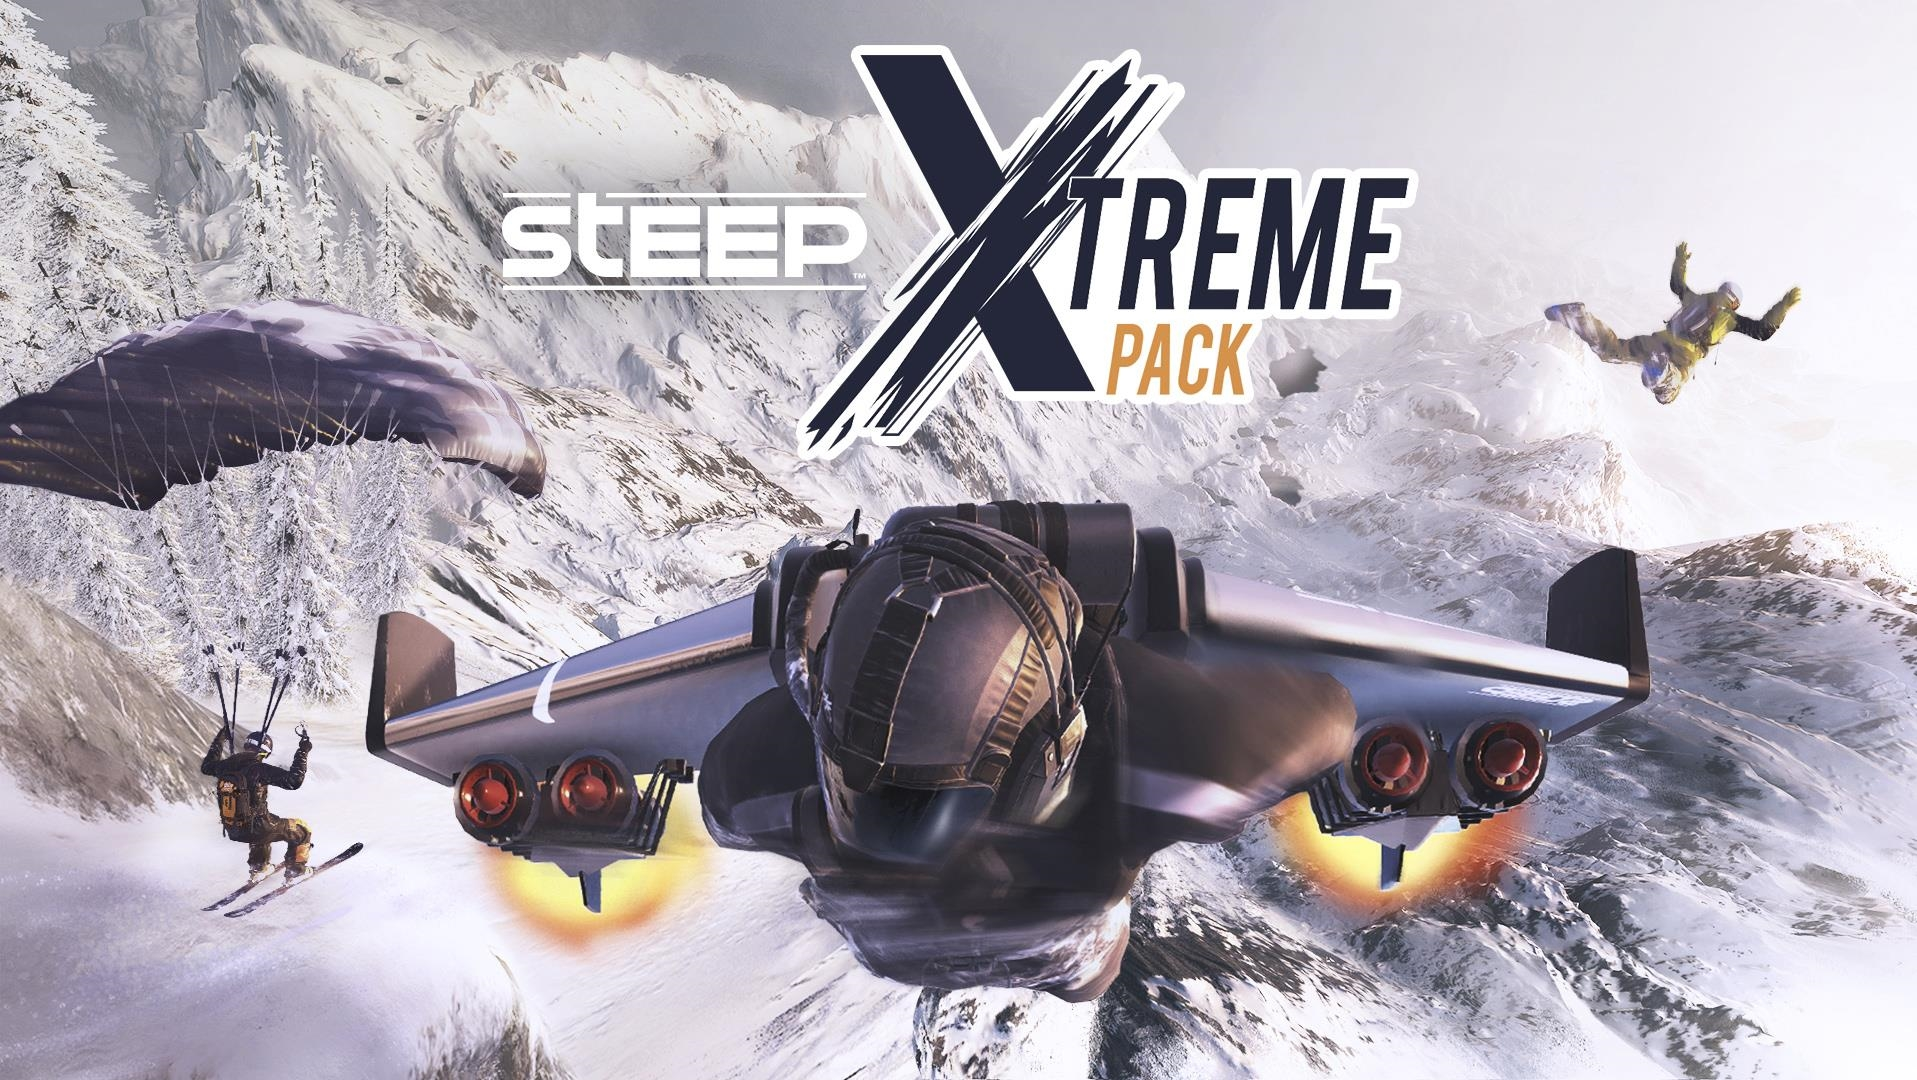 Steep Extreme Pack Arrives June 27th | DeviceDaily.com